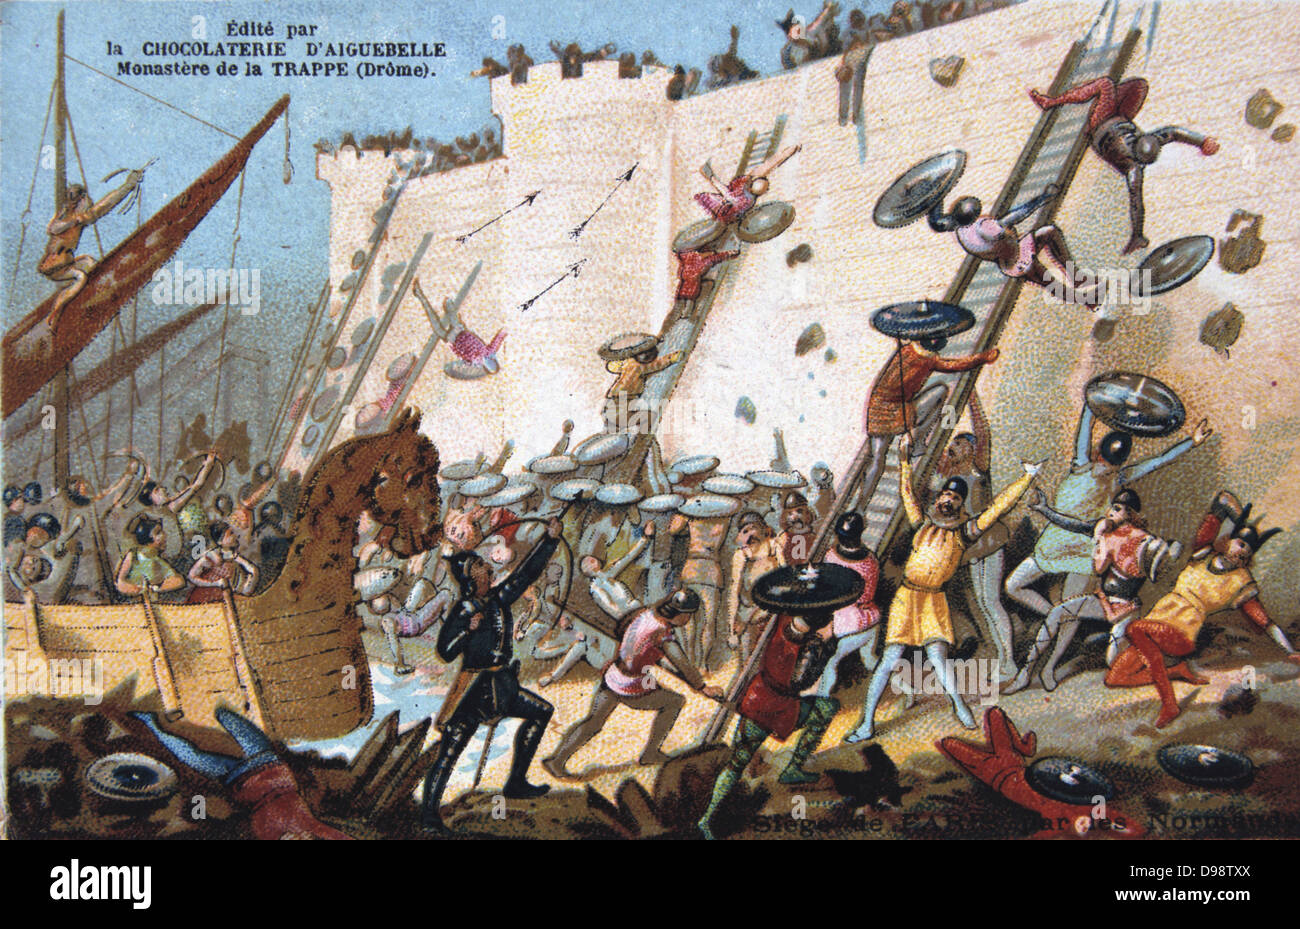 Siege of Paris 885-886 by the Vikings (Northmen). Considered by some to be the beginning of Norman power in France. - Stock Image